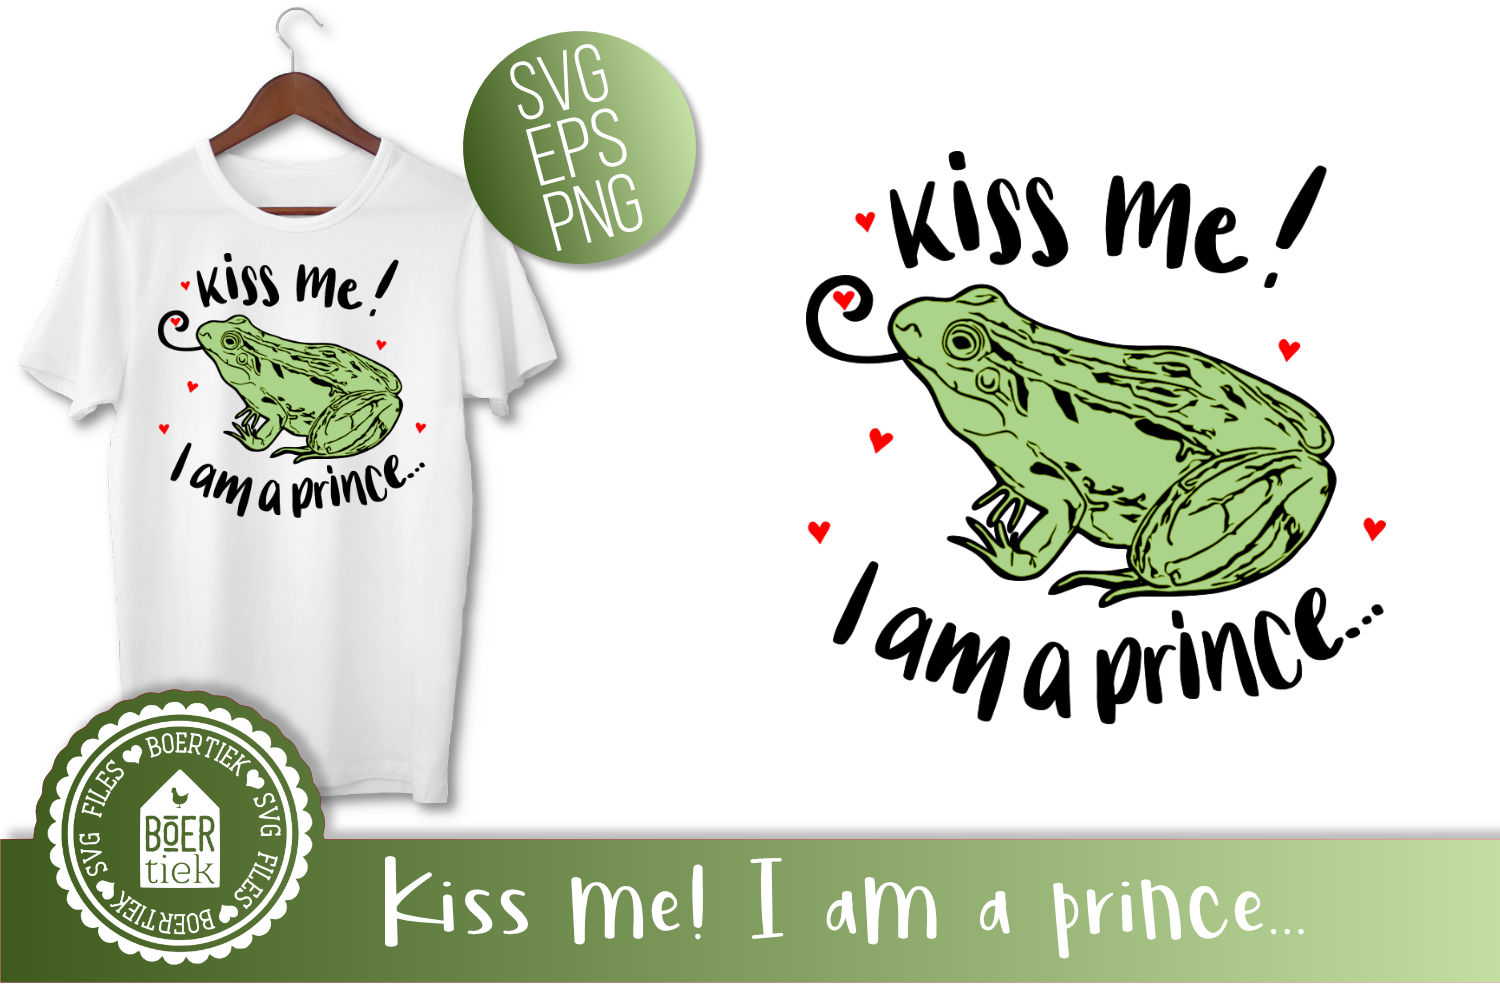 Frog - Kiss me! I am a prince, SVG cutting file example image 1